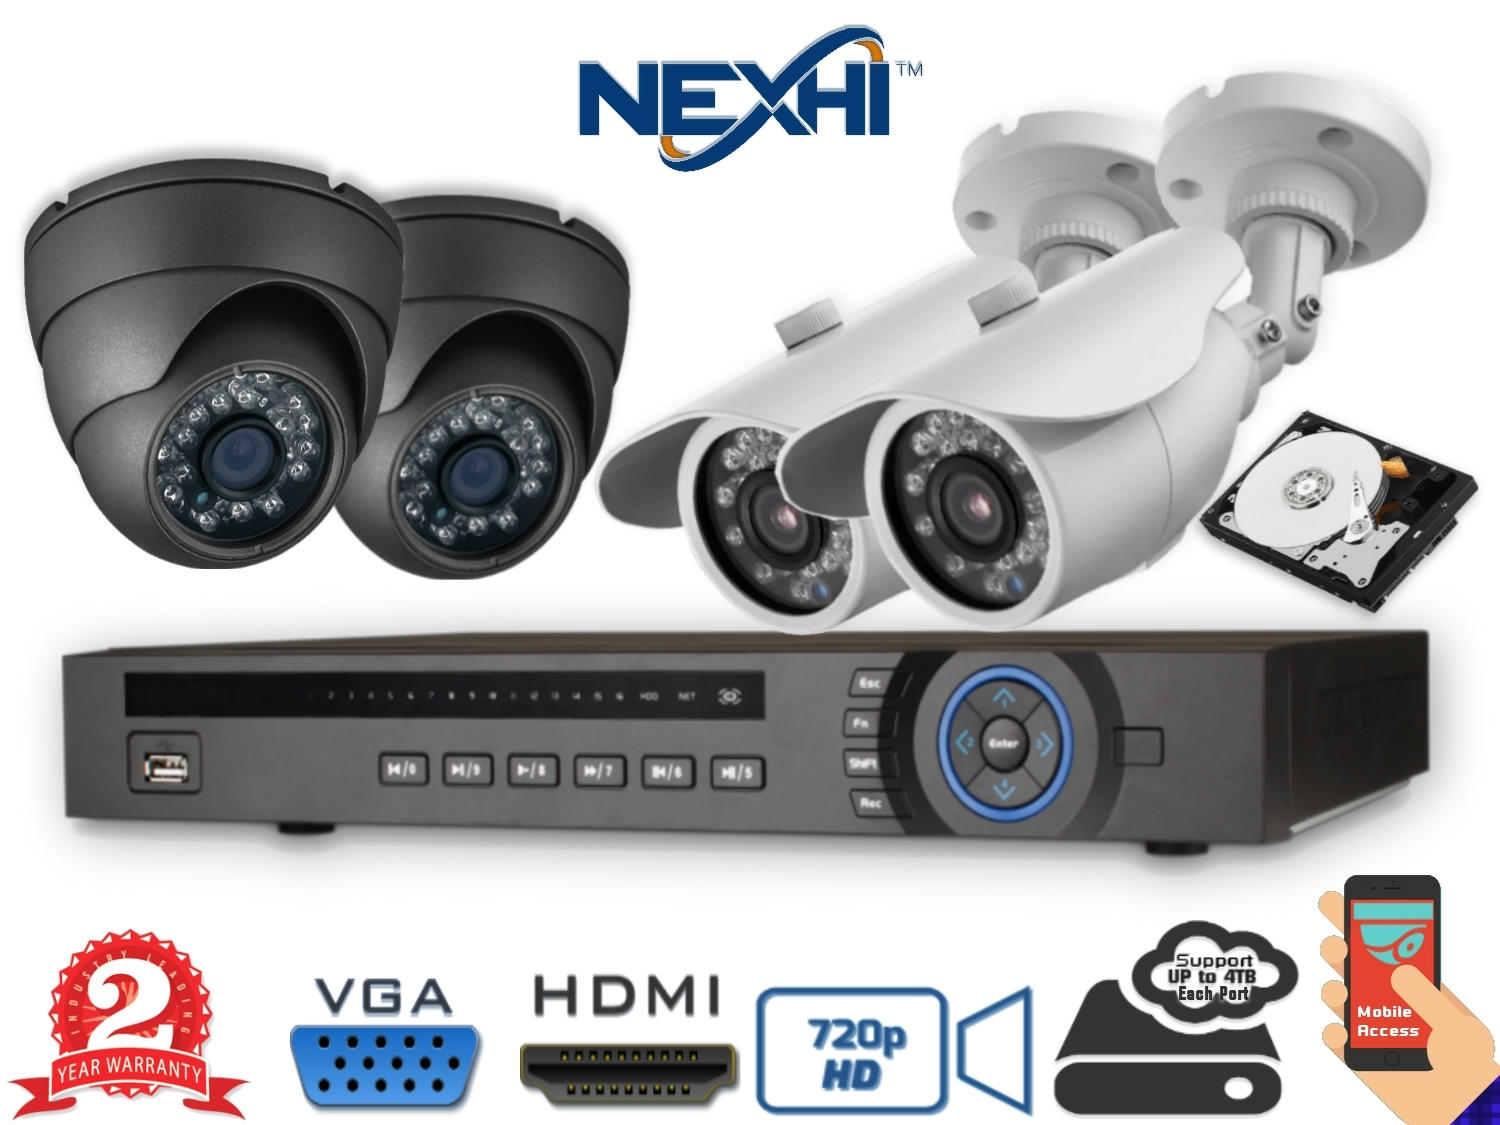 cctv camera not complete the Consumer complaints and reviews about cctv cameras poor service and installation not complete consumer electronics.